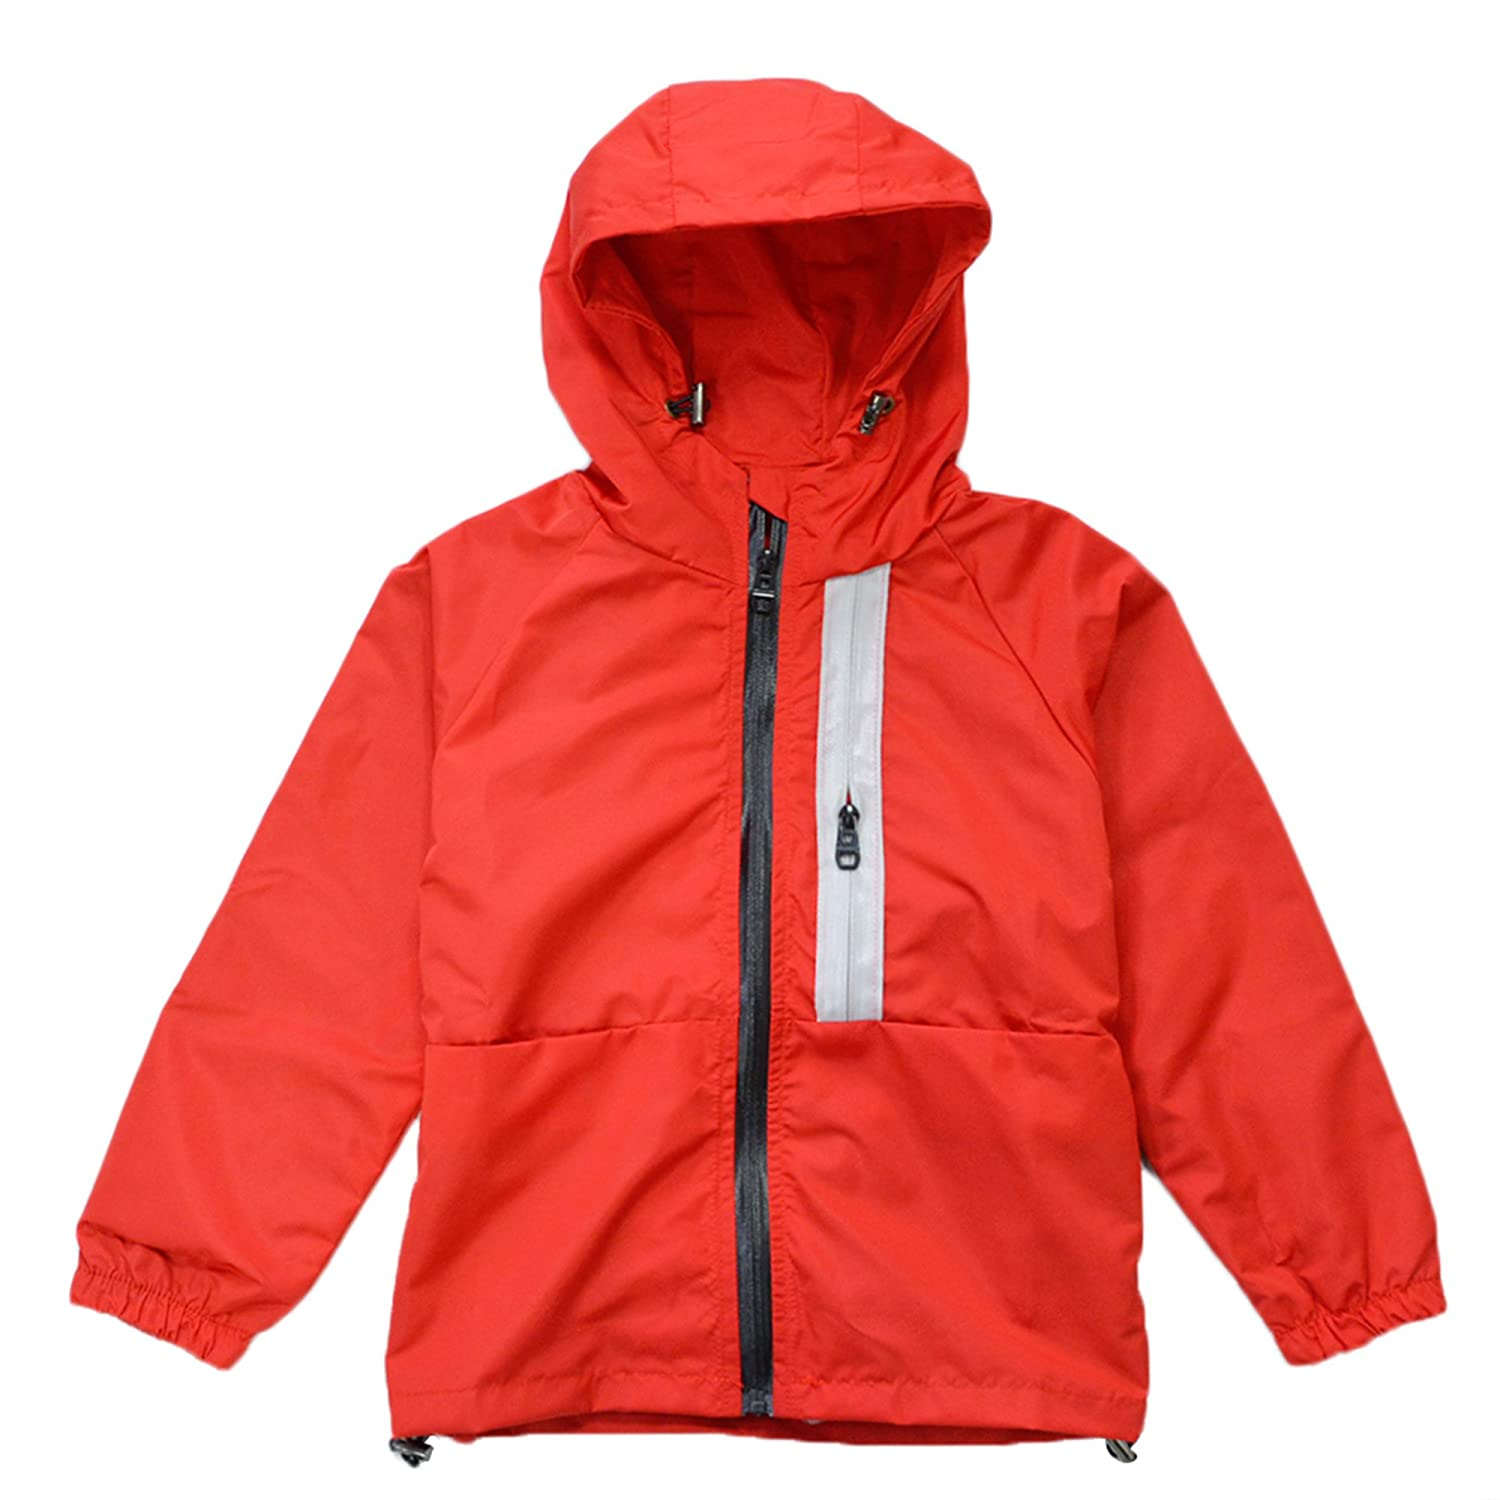 KISBINI Boy's Kids Hooded Windproof Zipper Jackets Coats Windbreakers Raincoats